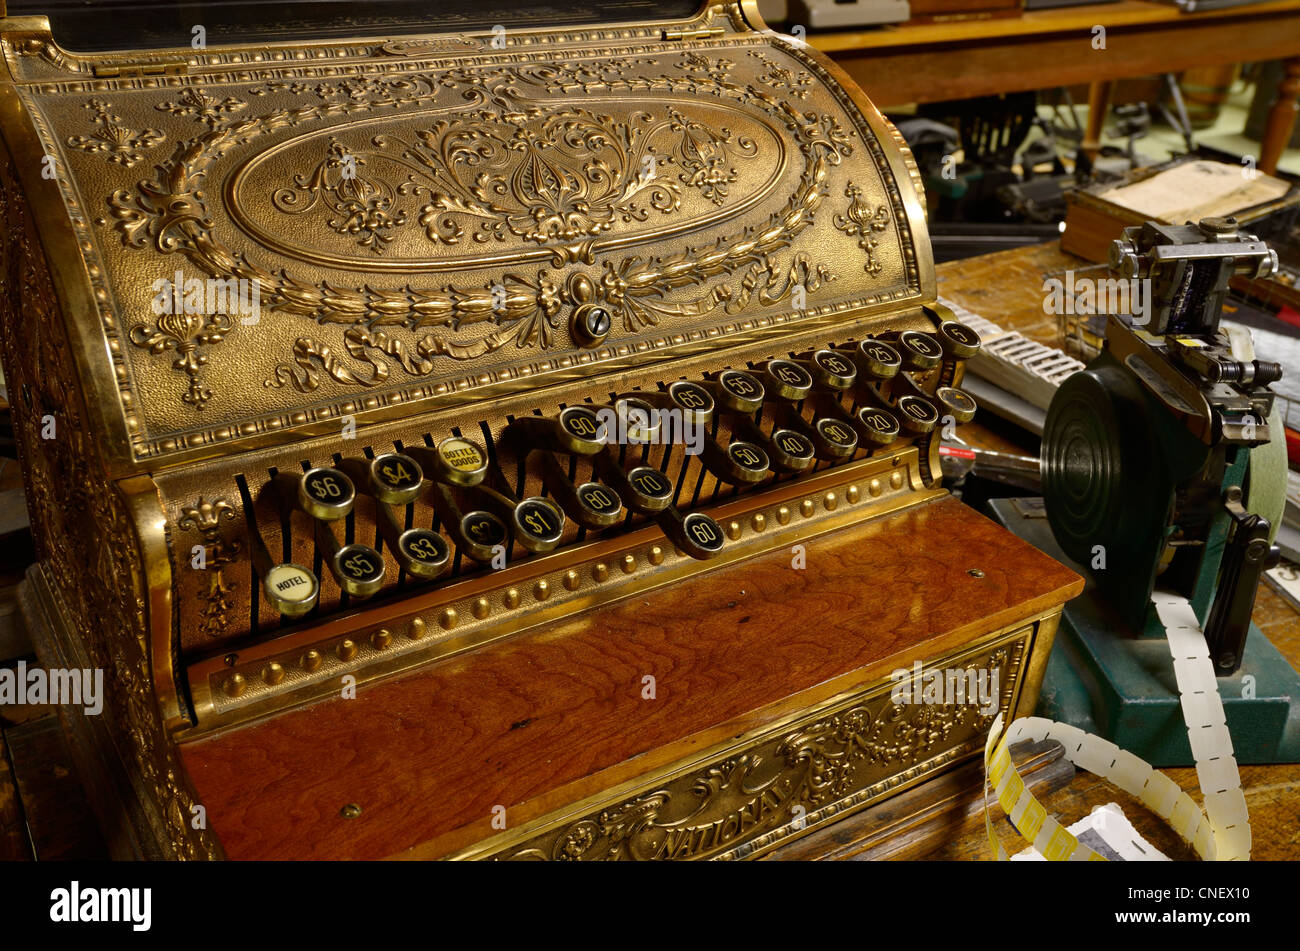 Brass embossed cash register in Home Hardware museum at The Mill in St Jacobs Ontario - Stock Image